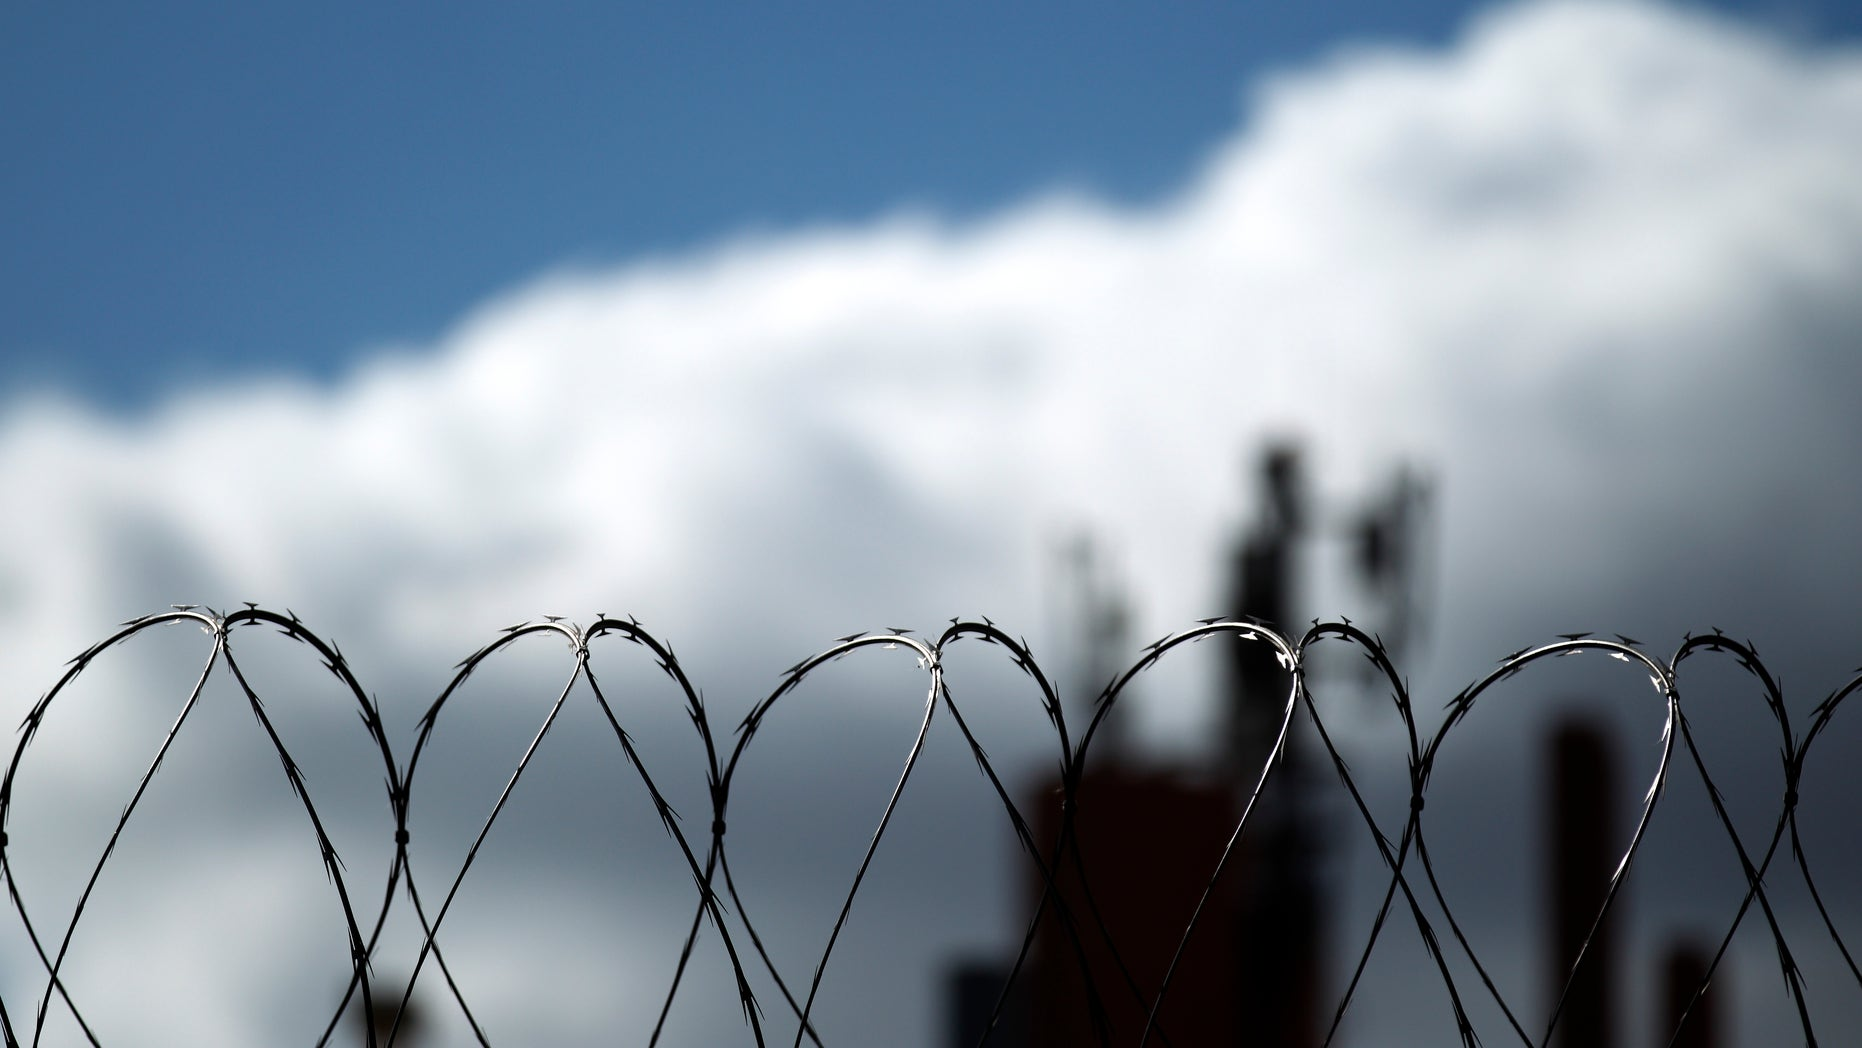 In this Monday, Jan. 31, 2011 photo, razor wire sits atop a border fence as a building in the Mexican border city of Tijuana sits behind, as seen from San Diego. After a dropoff during the recession, illegal immigrants seeking to sneak across the U.S. border may be ready to move again, according to a new study released Tuesday. (AP Photo/Gregory Bull)